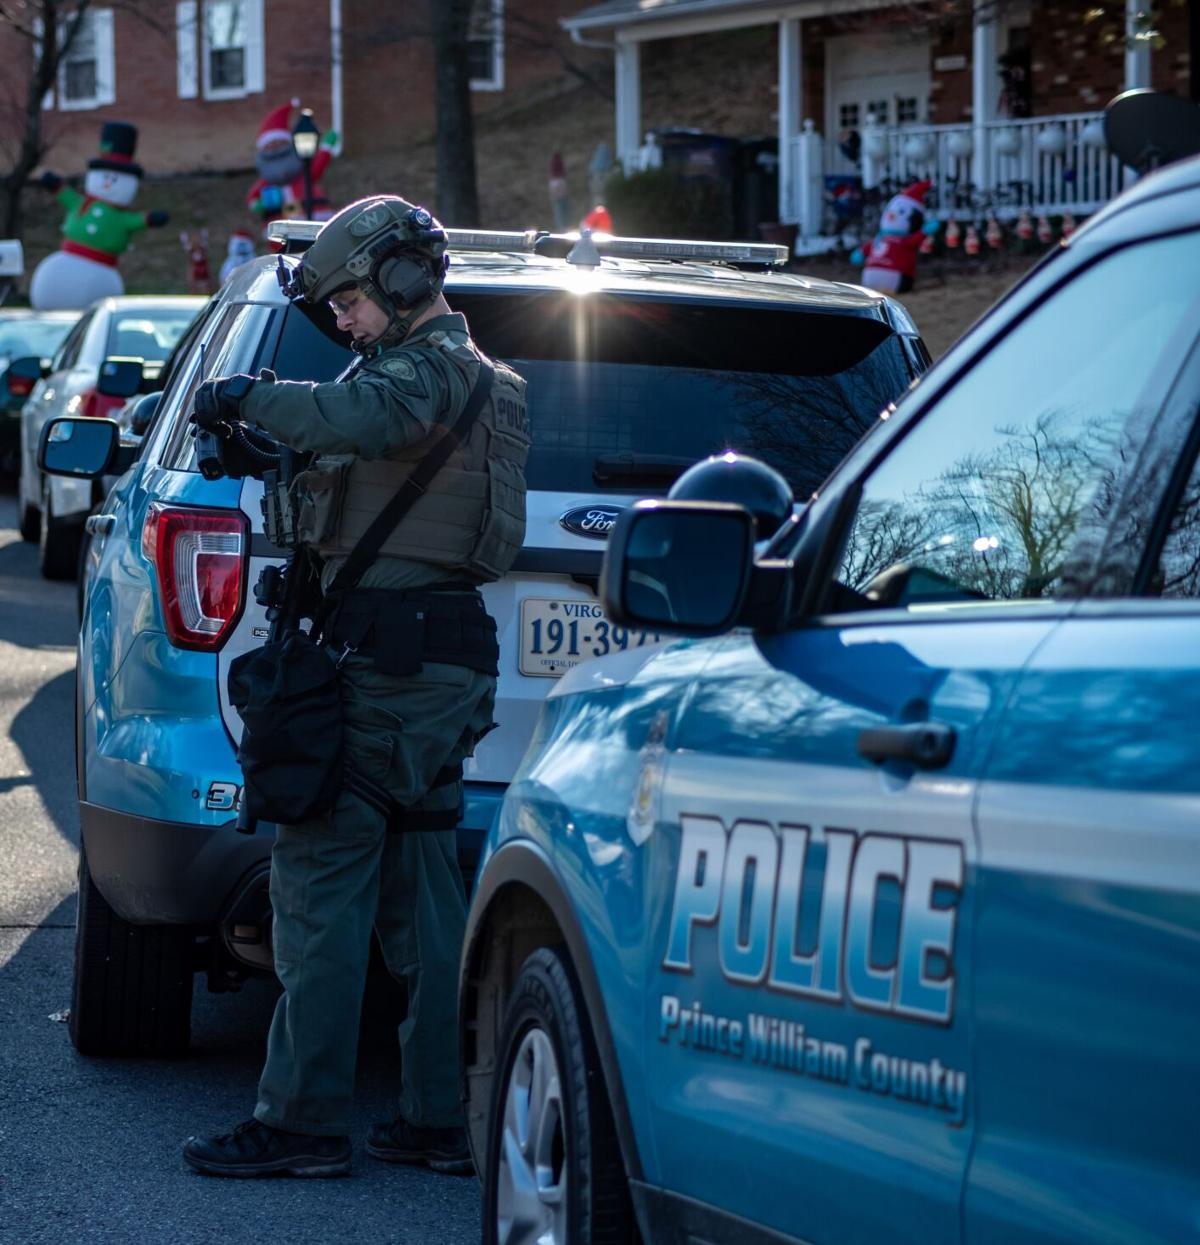 Prince William County police officer barricade situation 2020.jpg